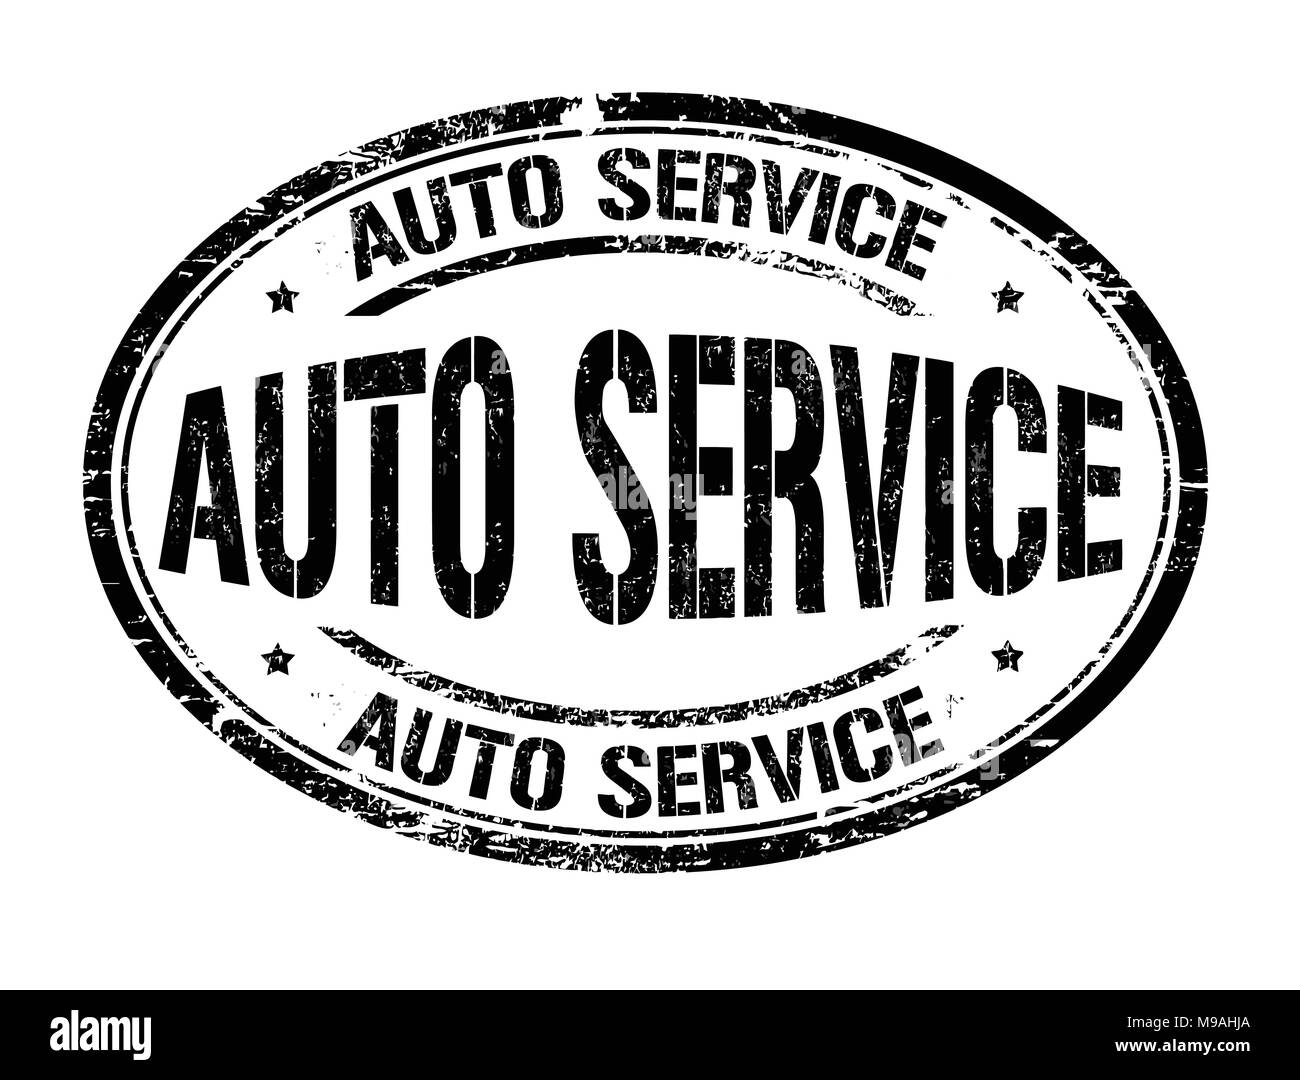 Auto service grunge rubber stamp on white background, vector illustration Stock Vector